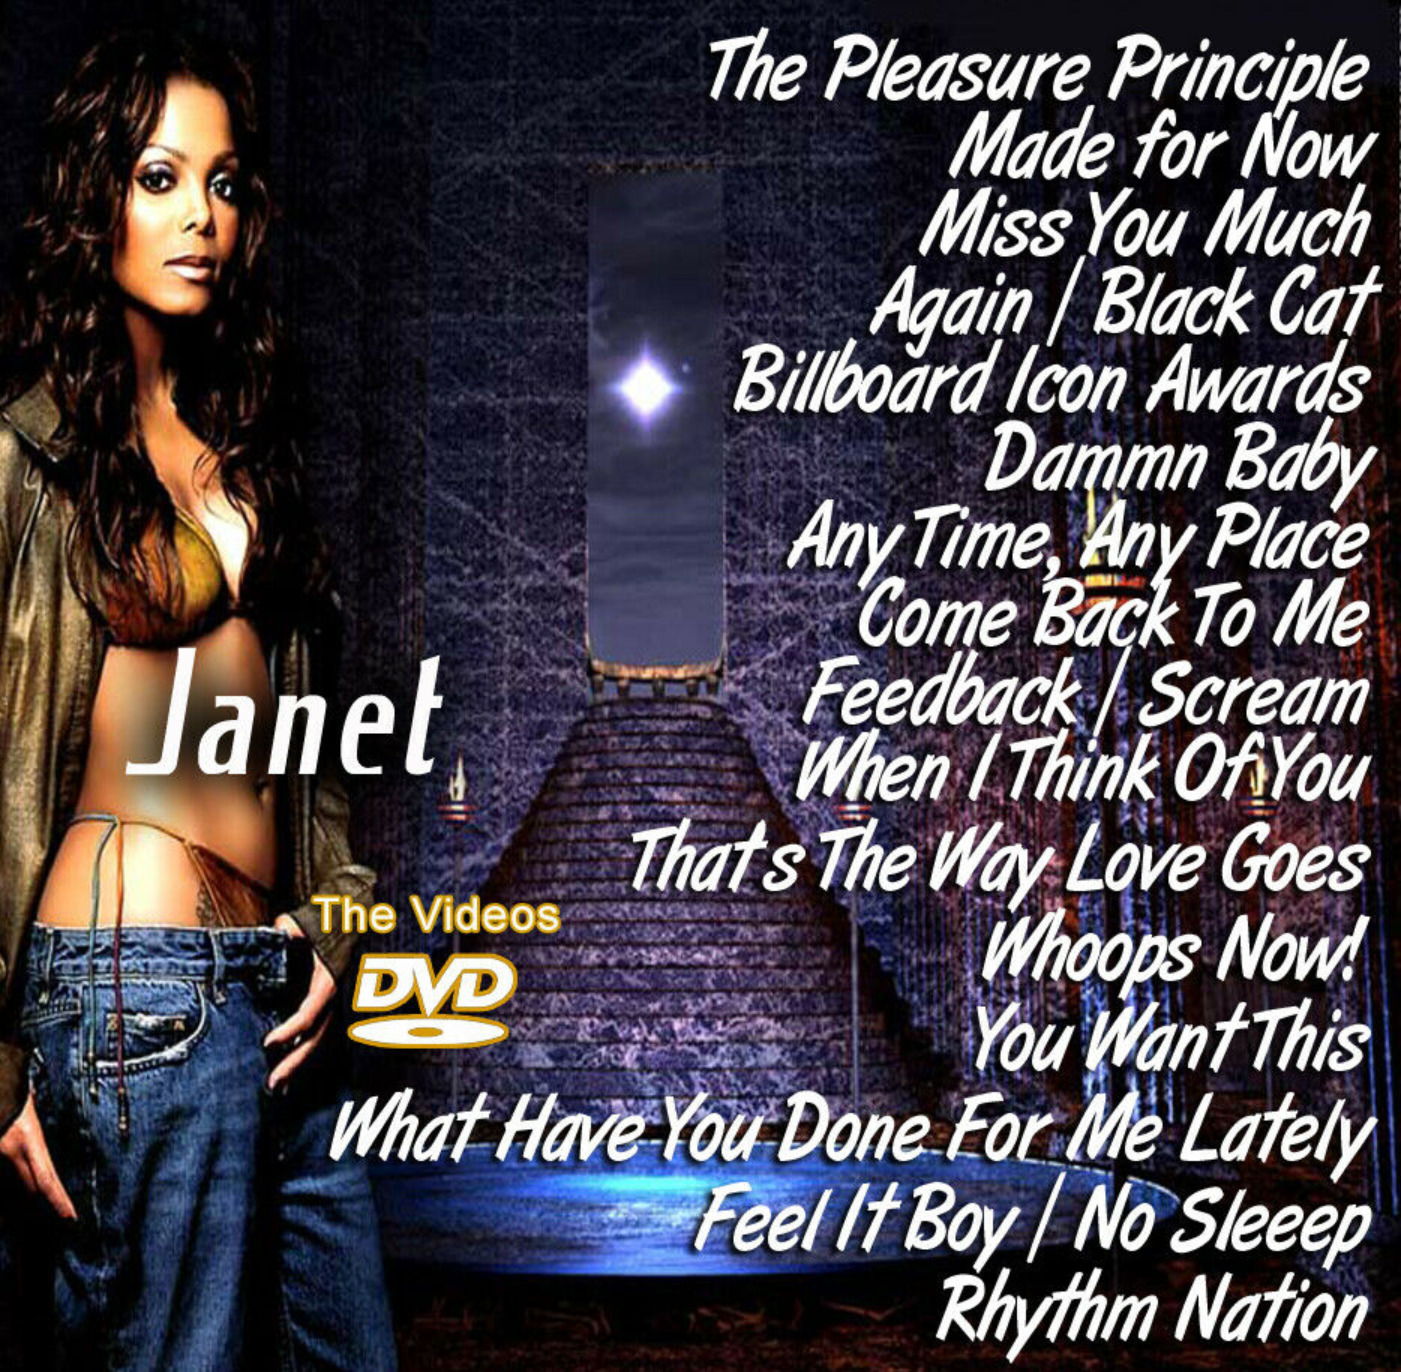 Janet Video Mix Videos MP4